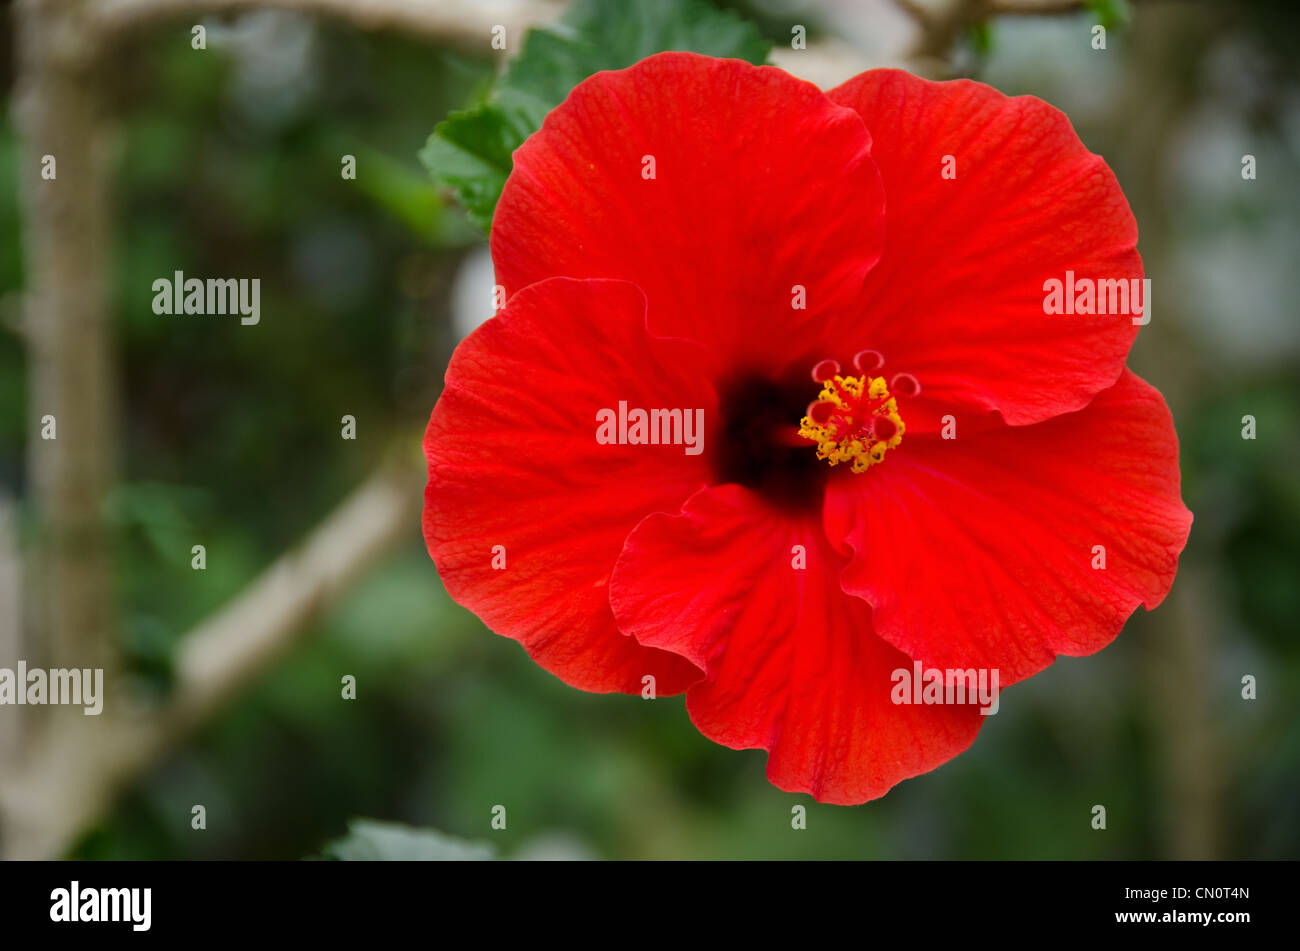 Red flower hibiscus in green stock photos red flower hibiscus in red hibiscus flower in front of a green background stock image izmirmasajfo